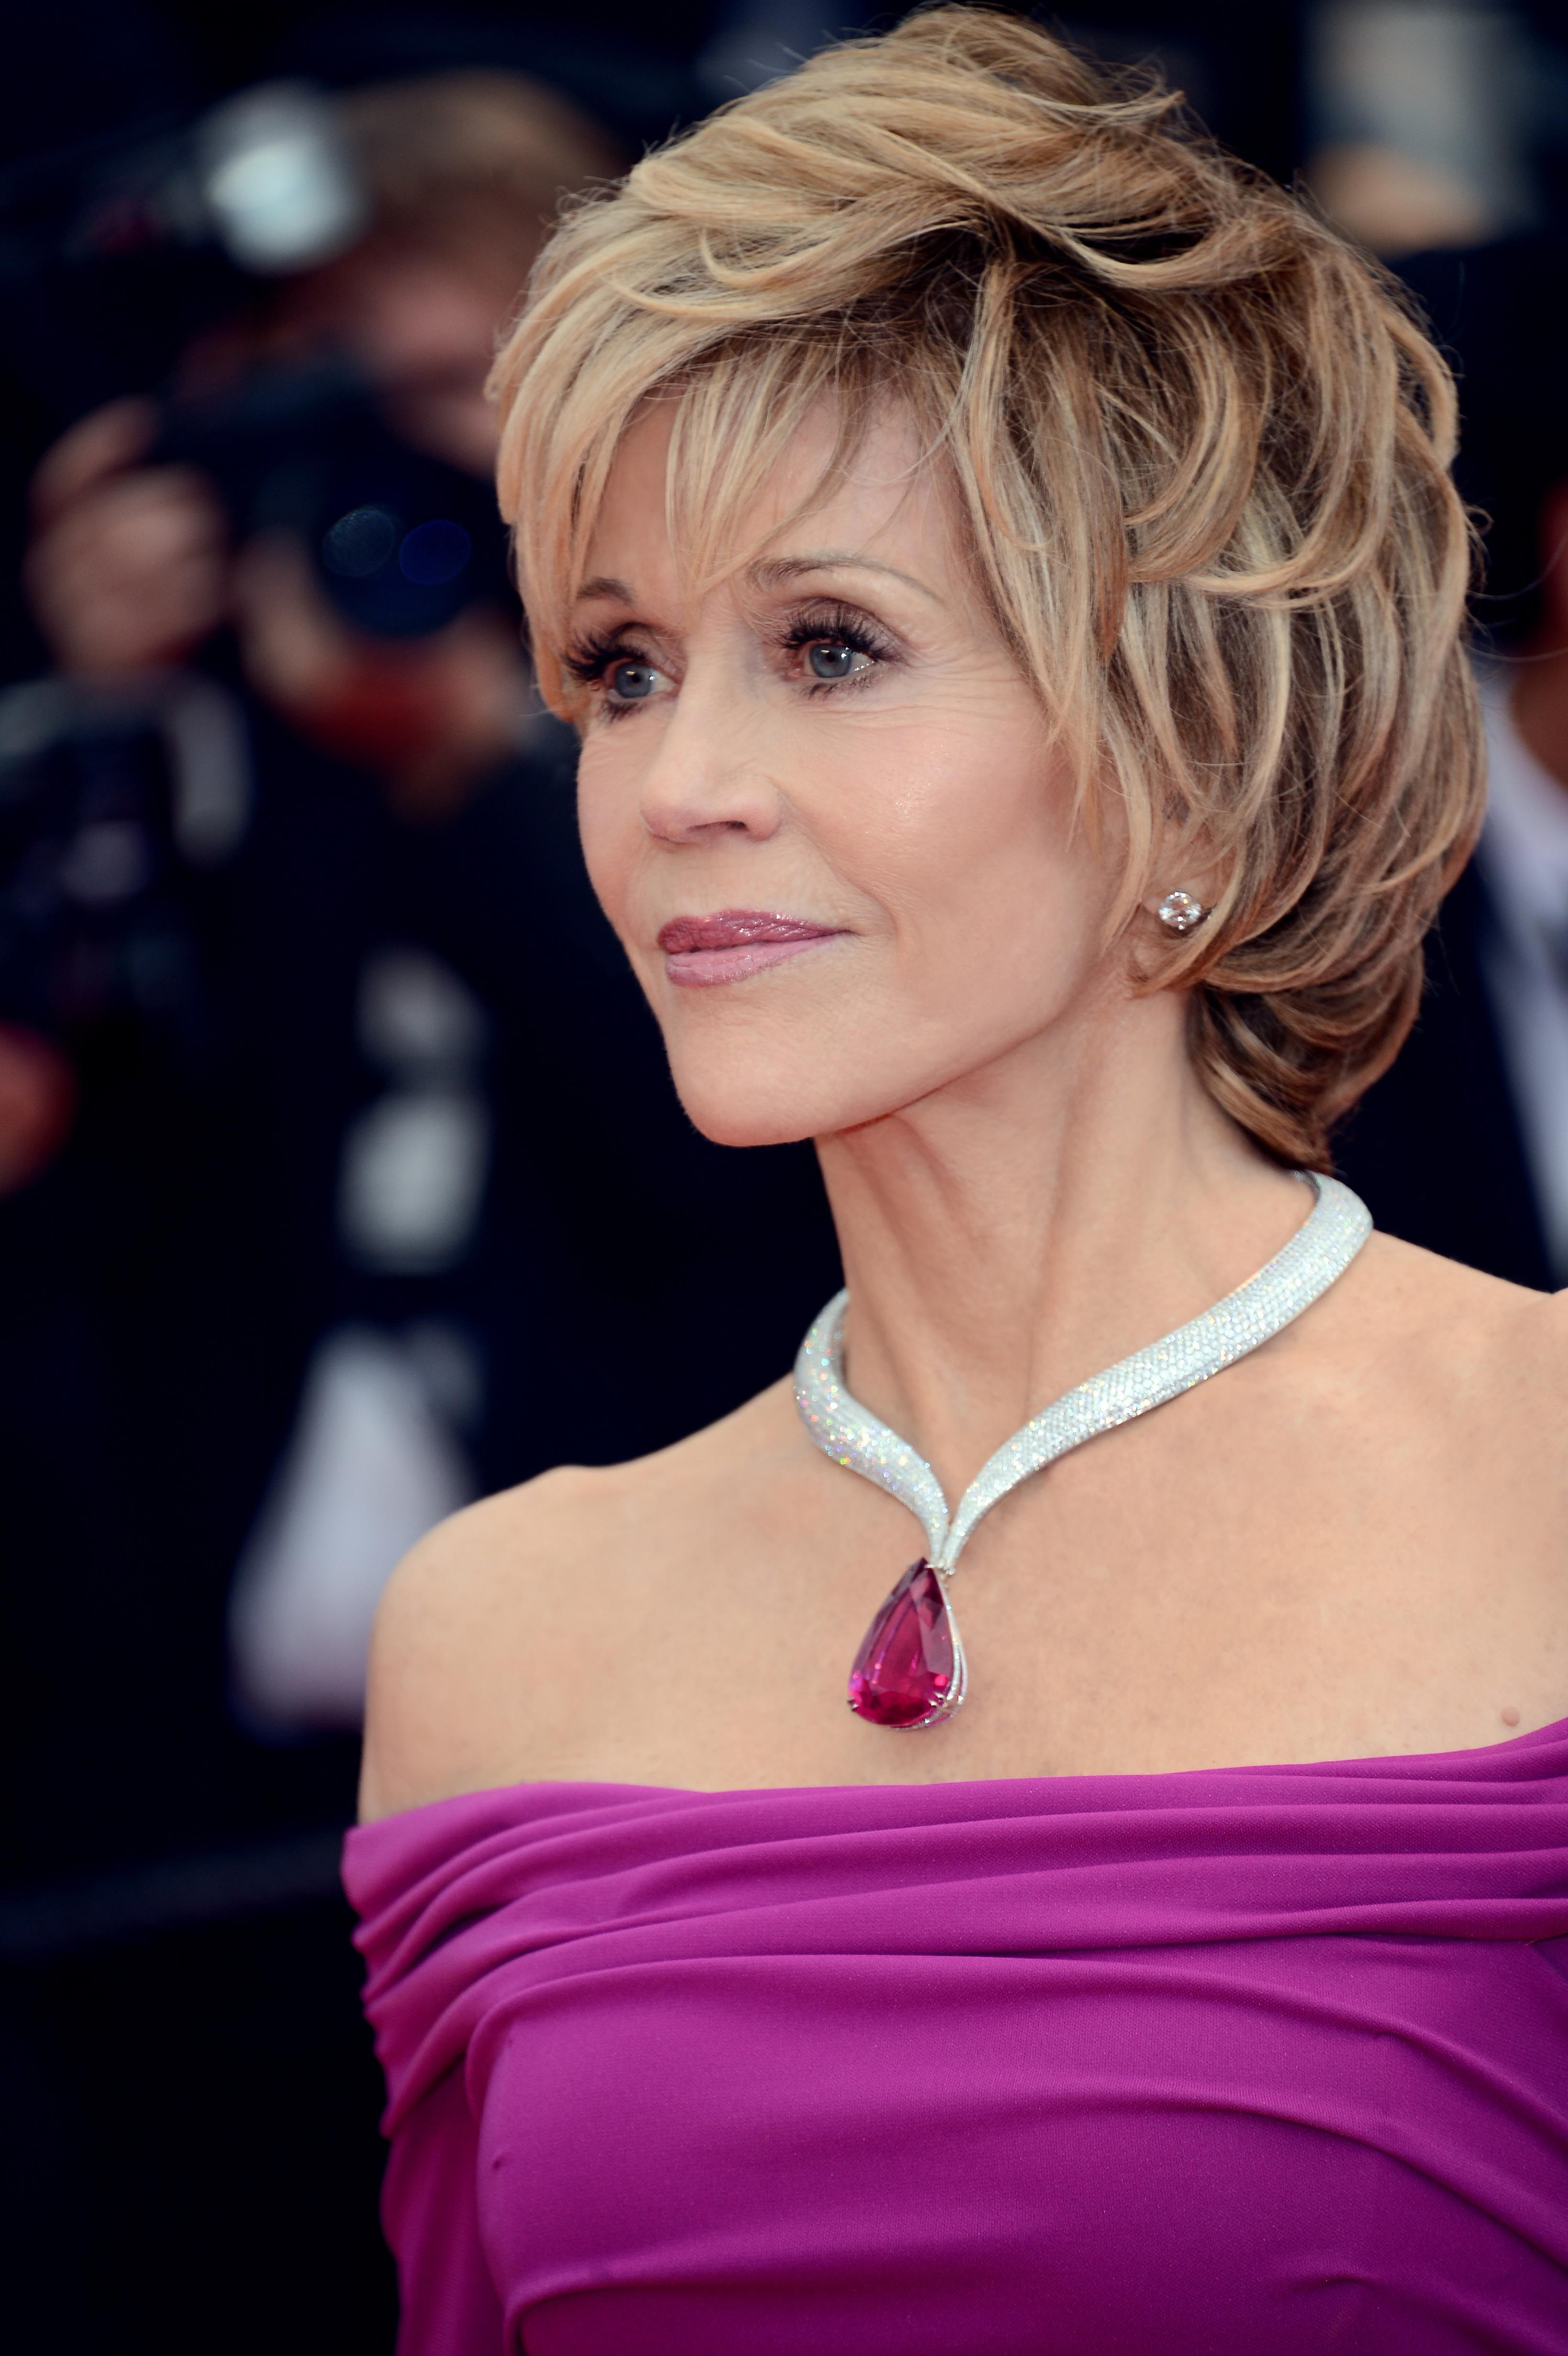 Lisa ann before plastic surgery short hairstyle 2013 - The One And Only Jane Fonda Cannes 2013 I Like The Hair